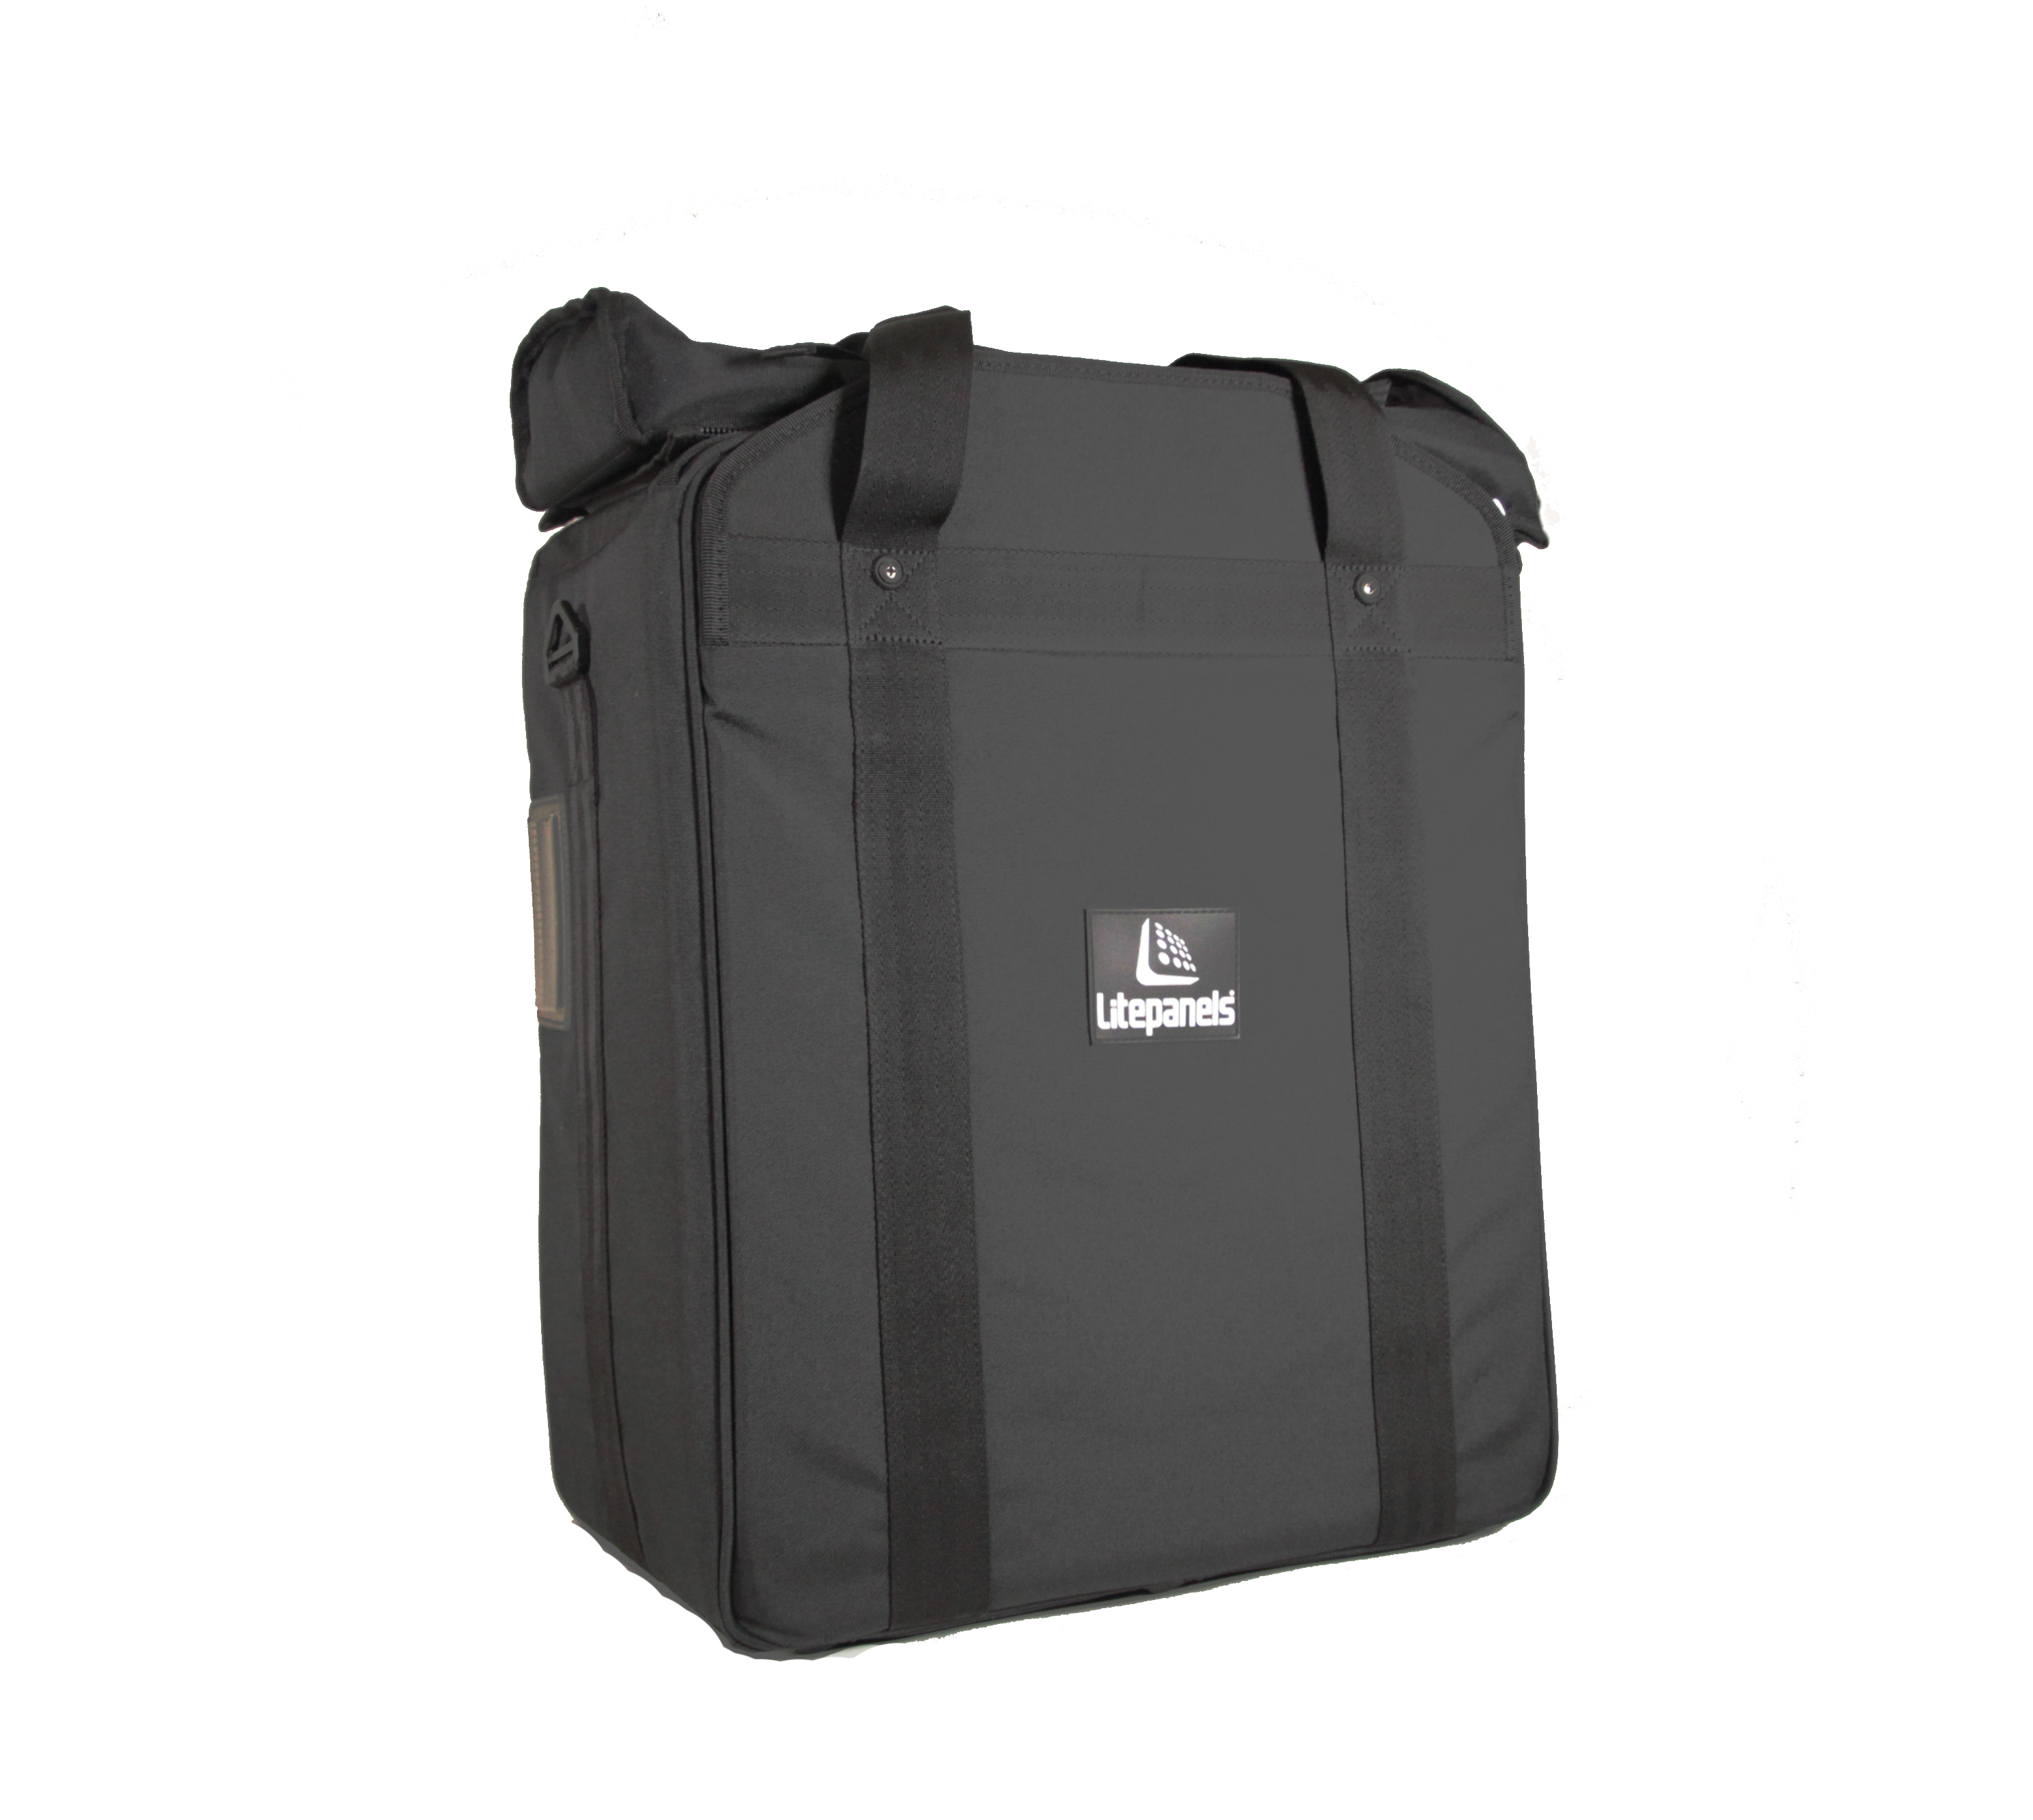 Astra Two Light Carrying case